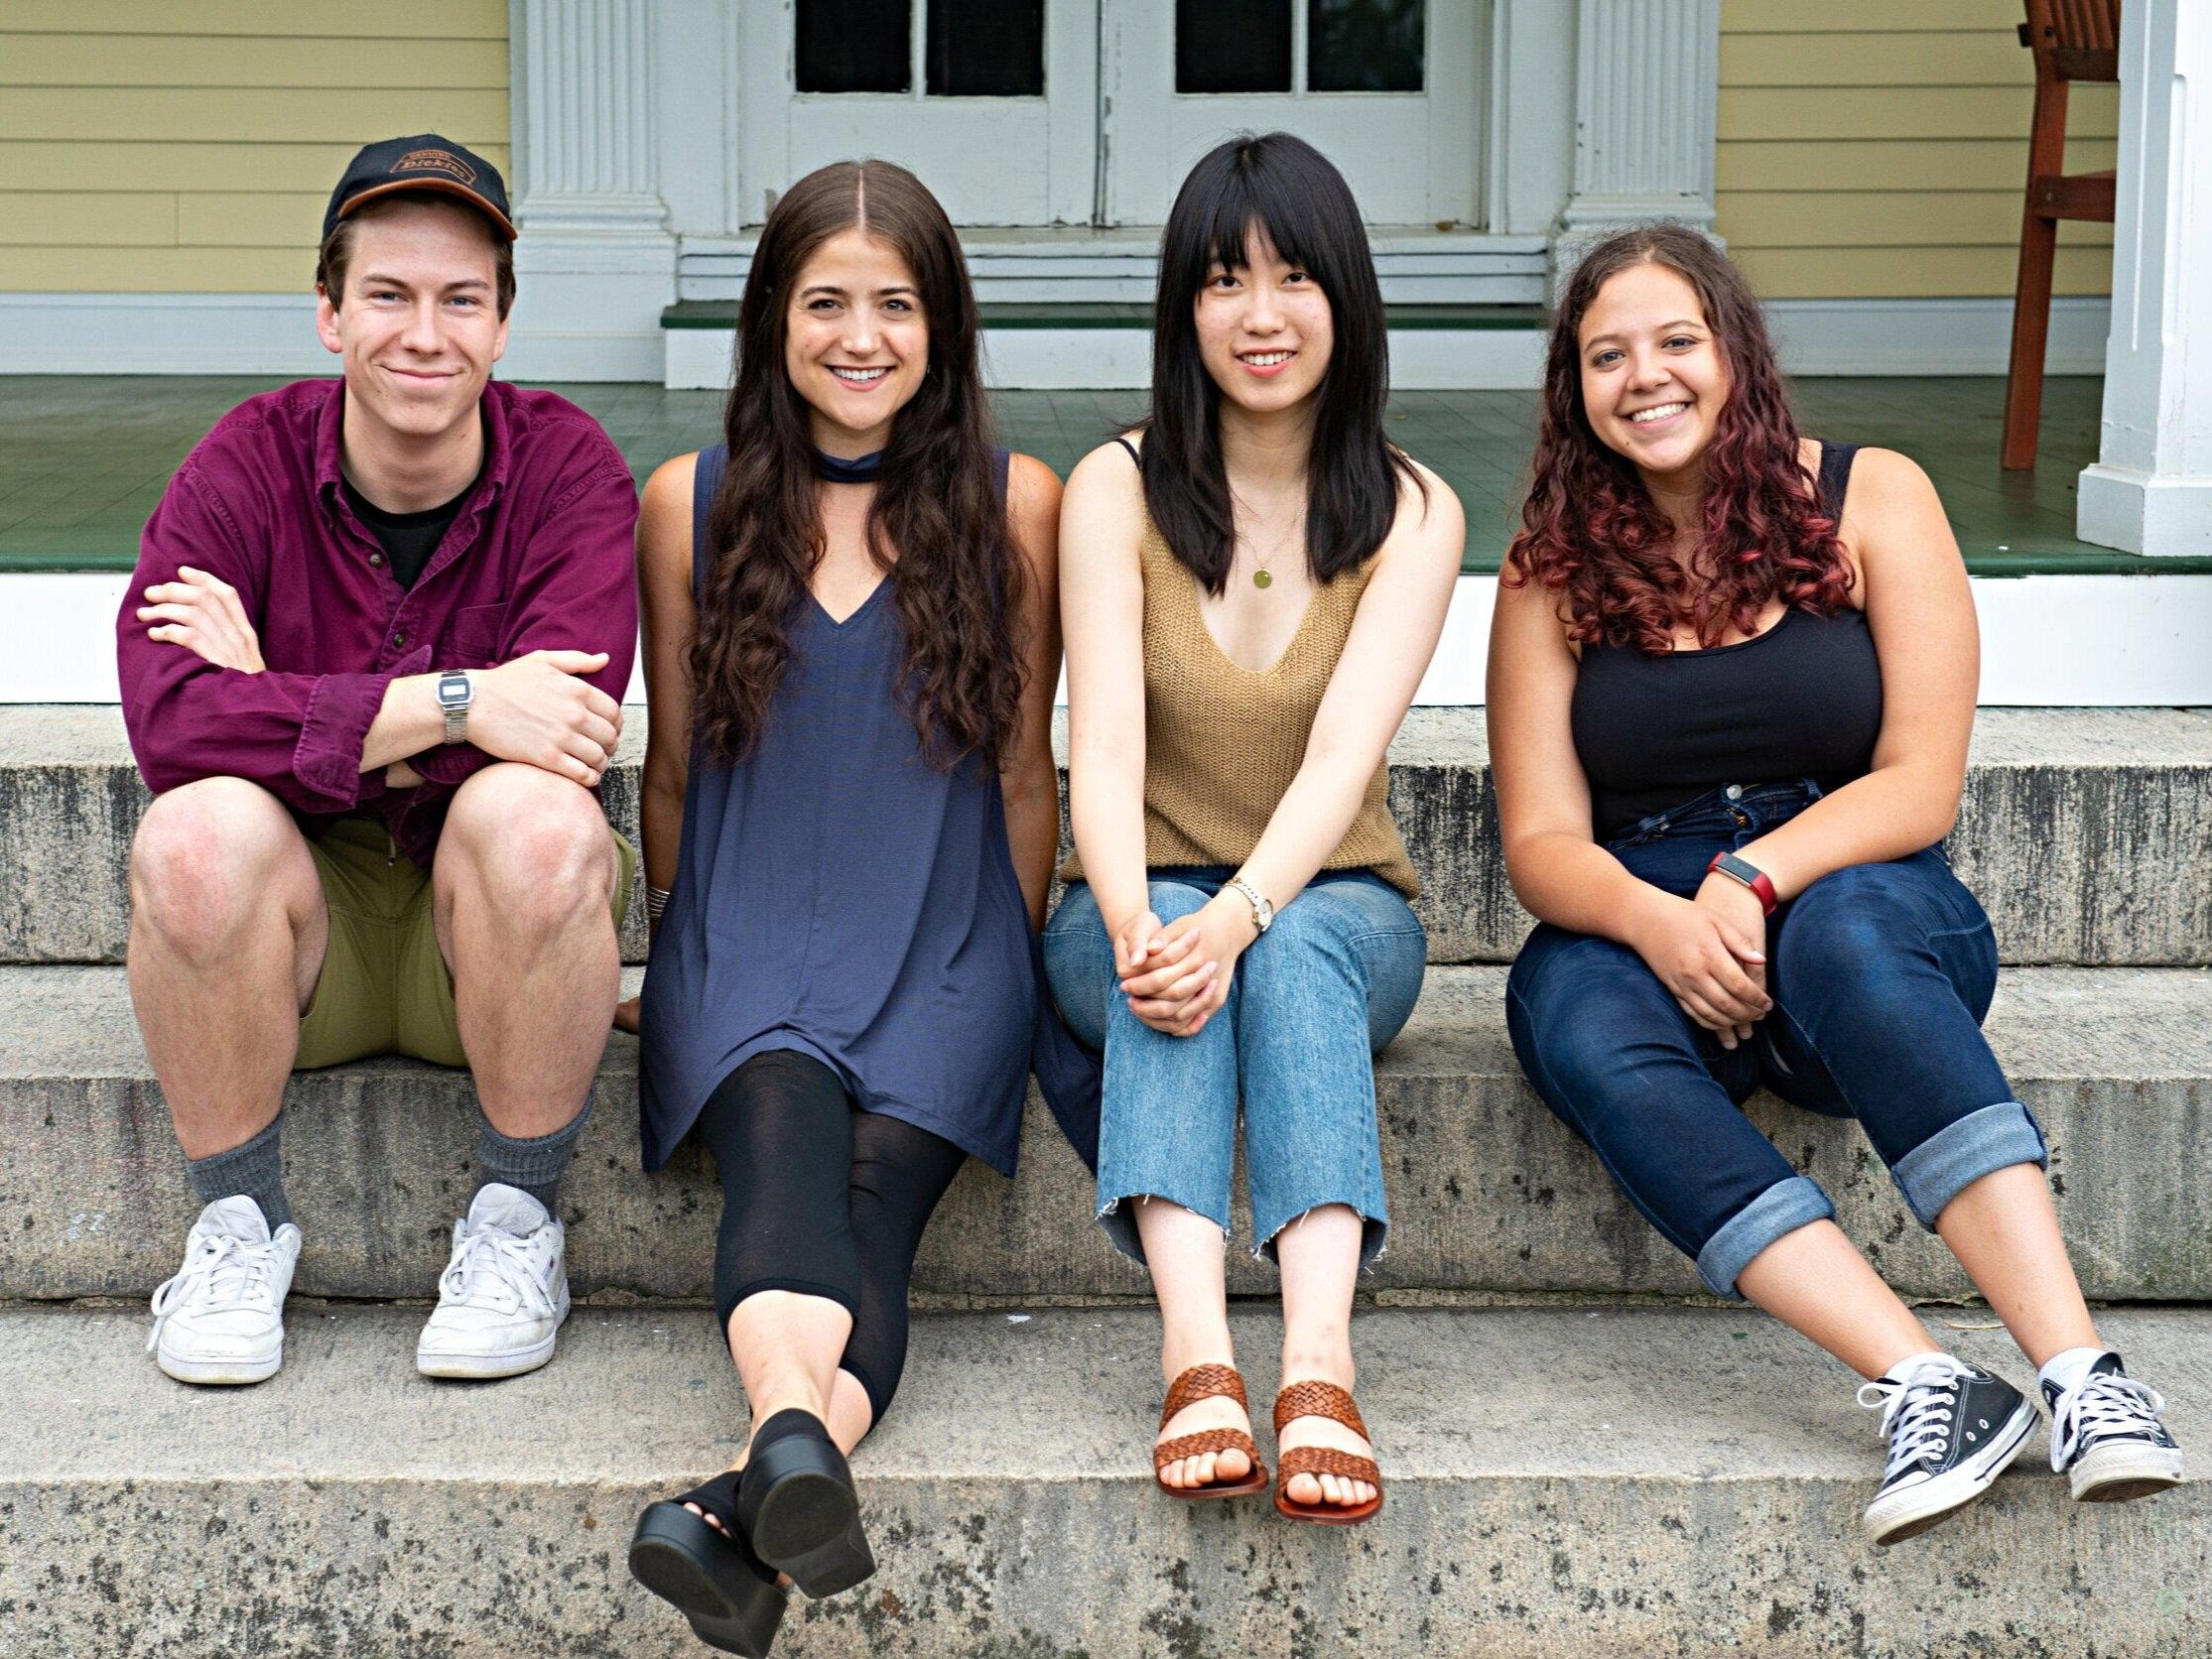 Directors for Theatermakers 2019 at The Eugene O'Neill Theater Center Photographed: Kyle Best, Leslie Roth, Alison Qu & Maria Zurita Ontiveros Photography: Isaak Berliner